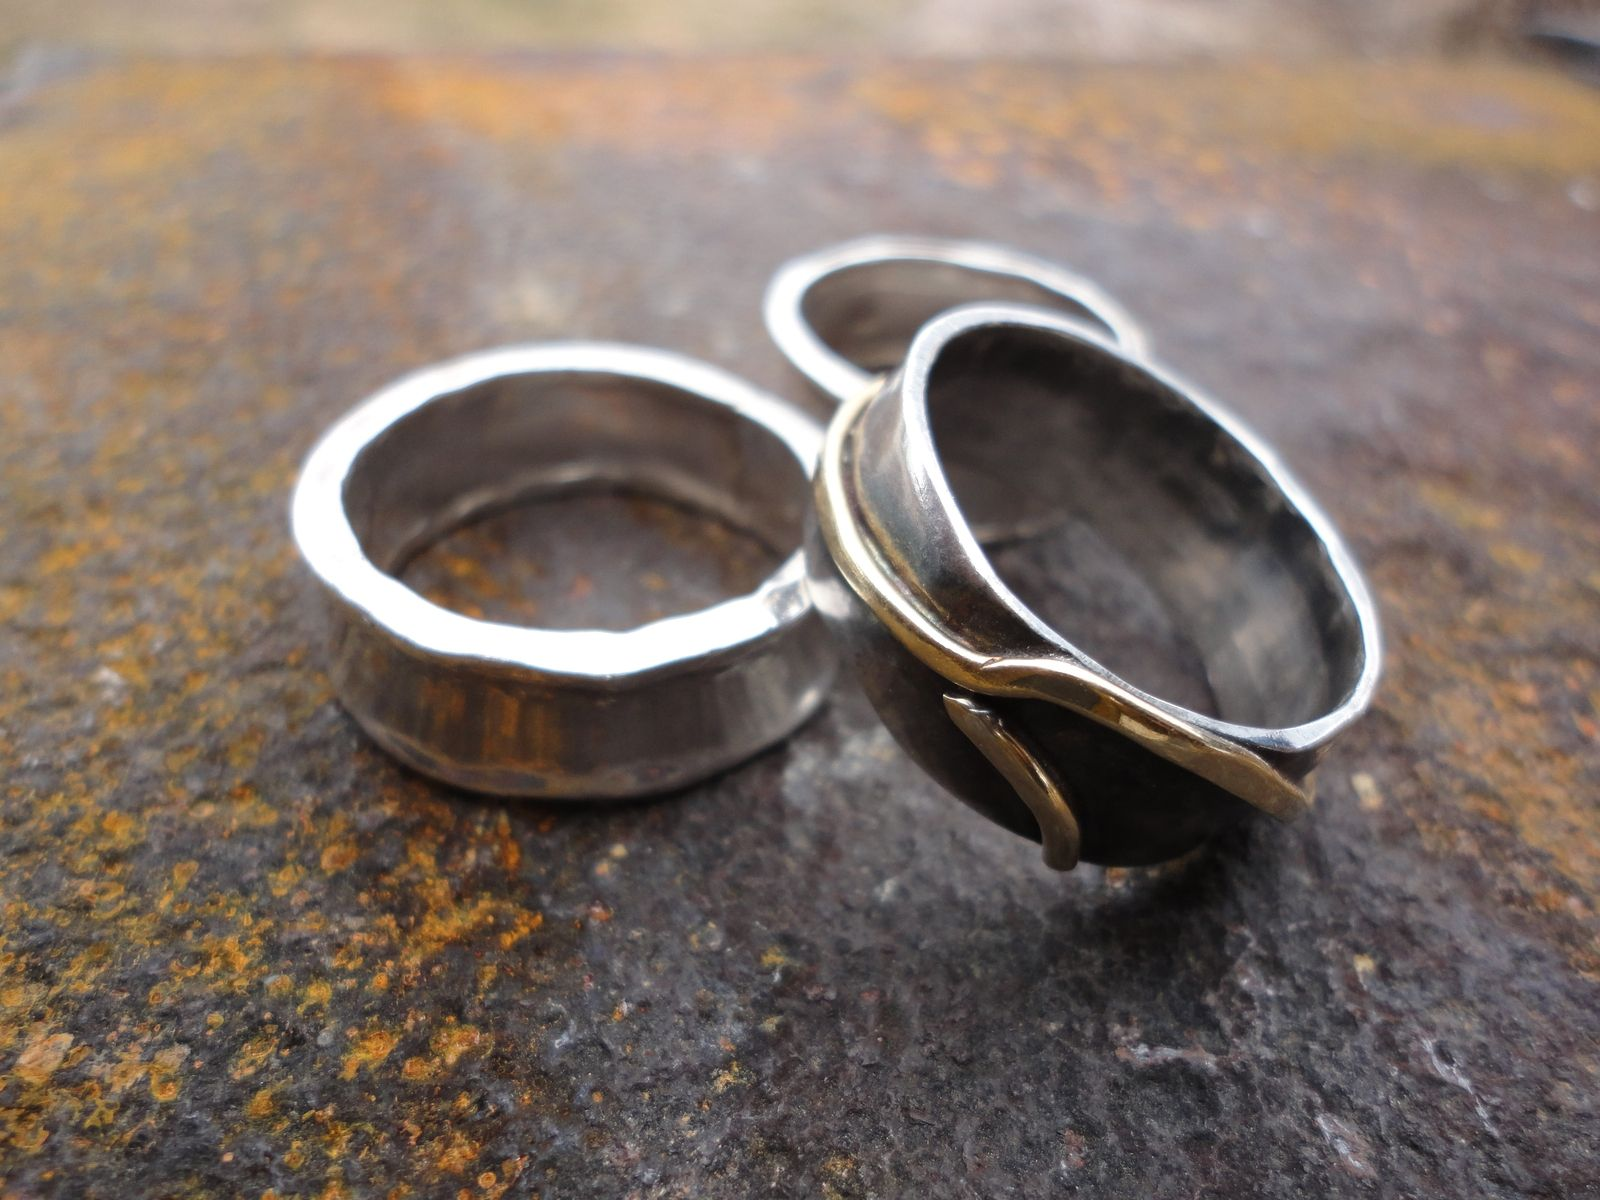 Hand Crafted Forged Rings By The Black Toad Forge